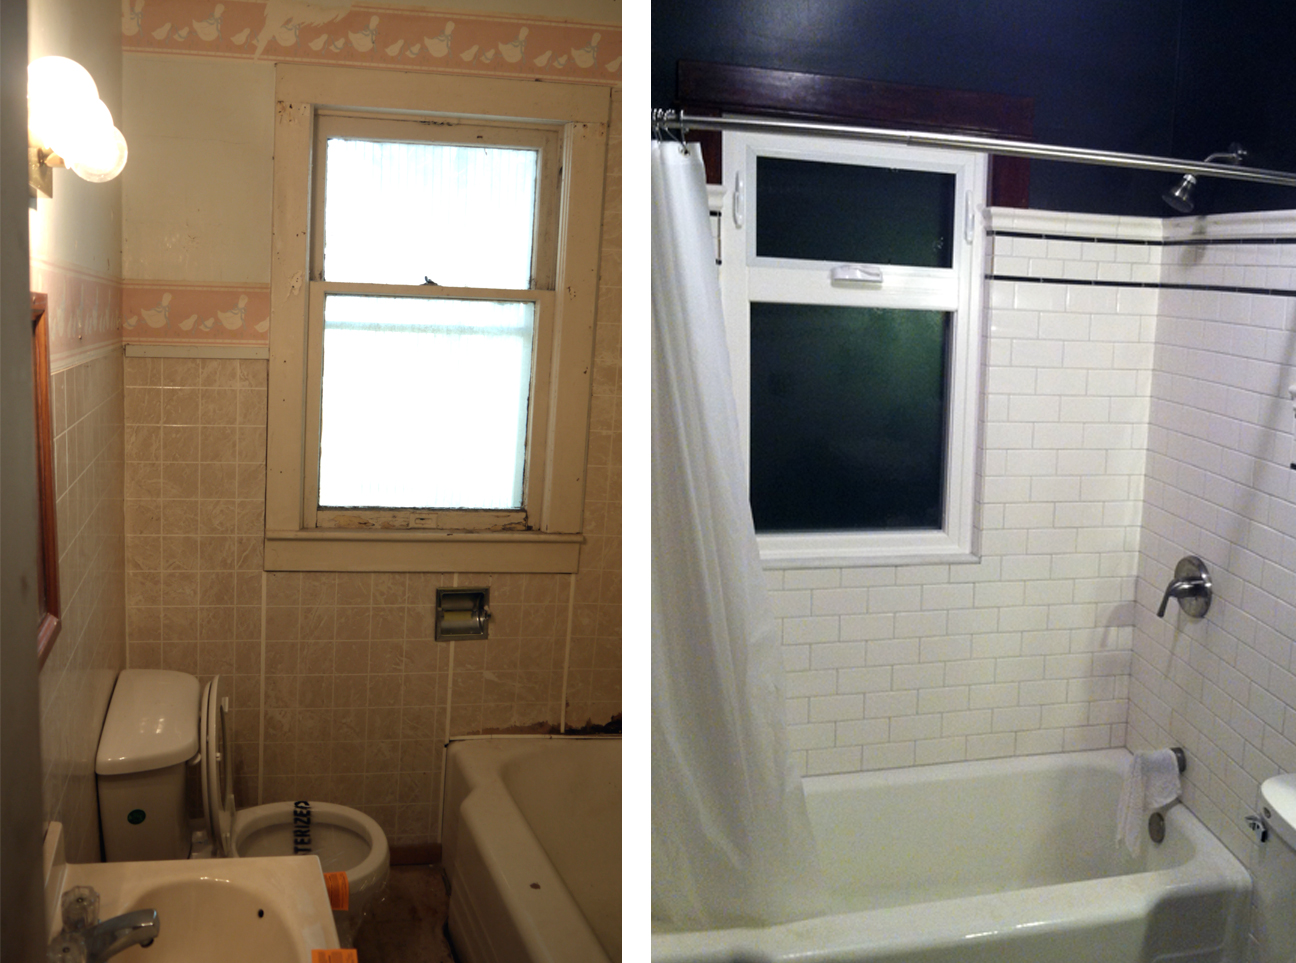 About Me Up And Adam Ries - How much does it cost to replace a bathroom window